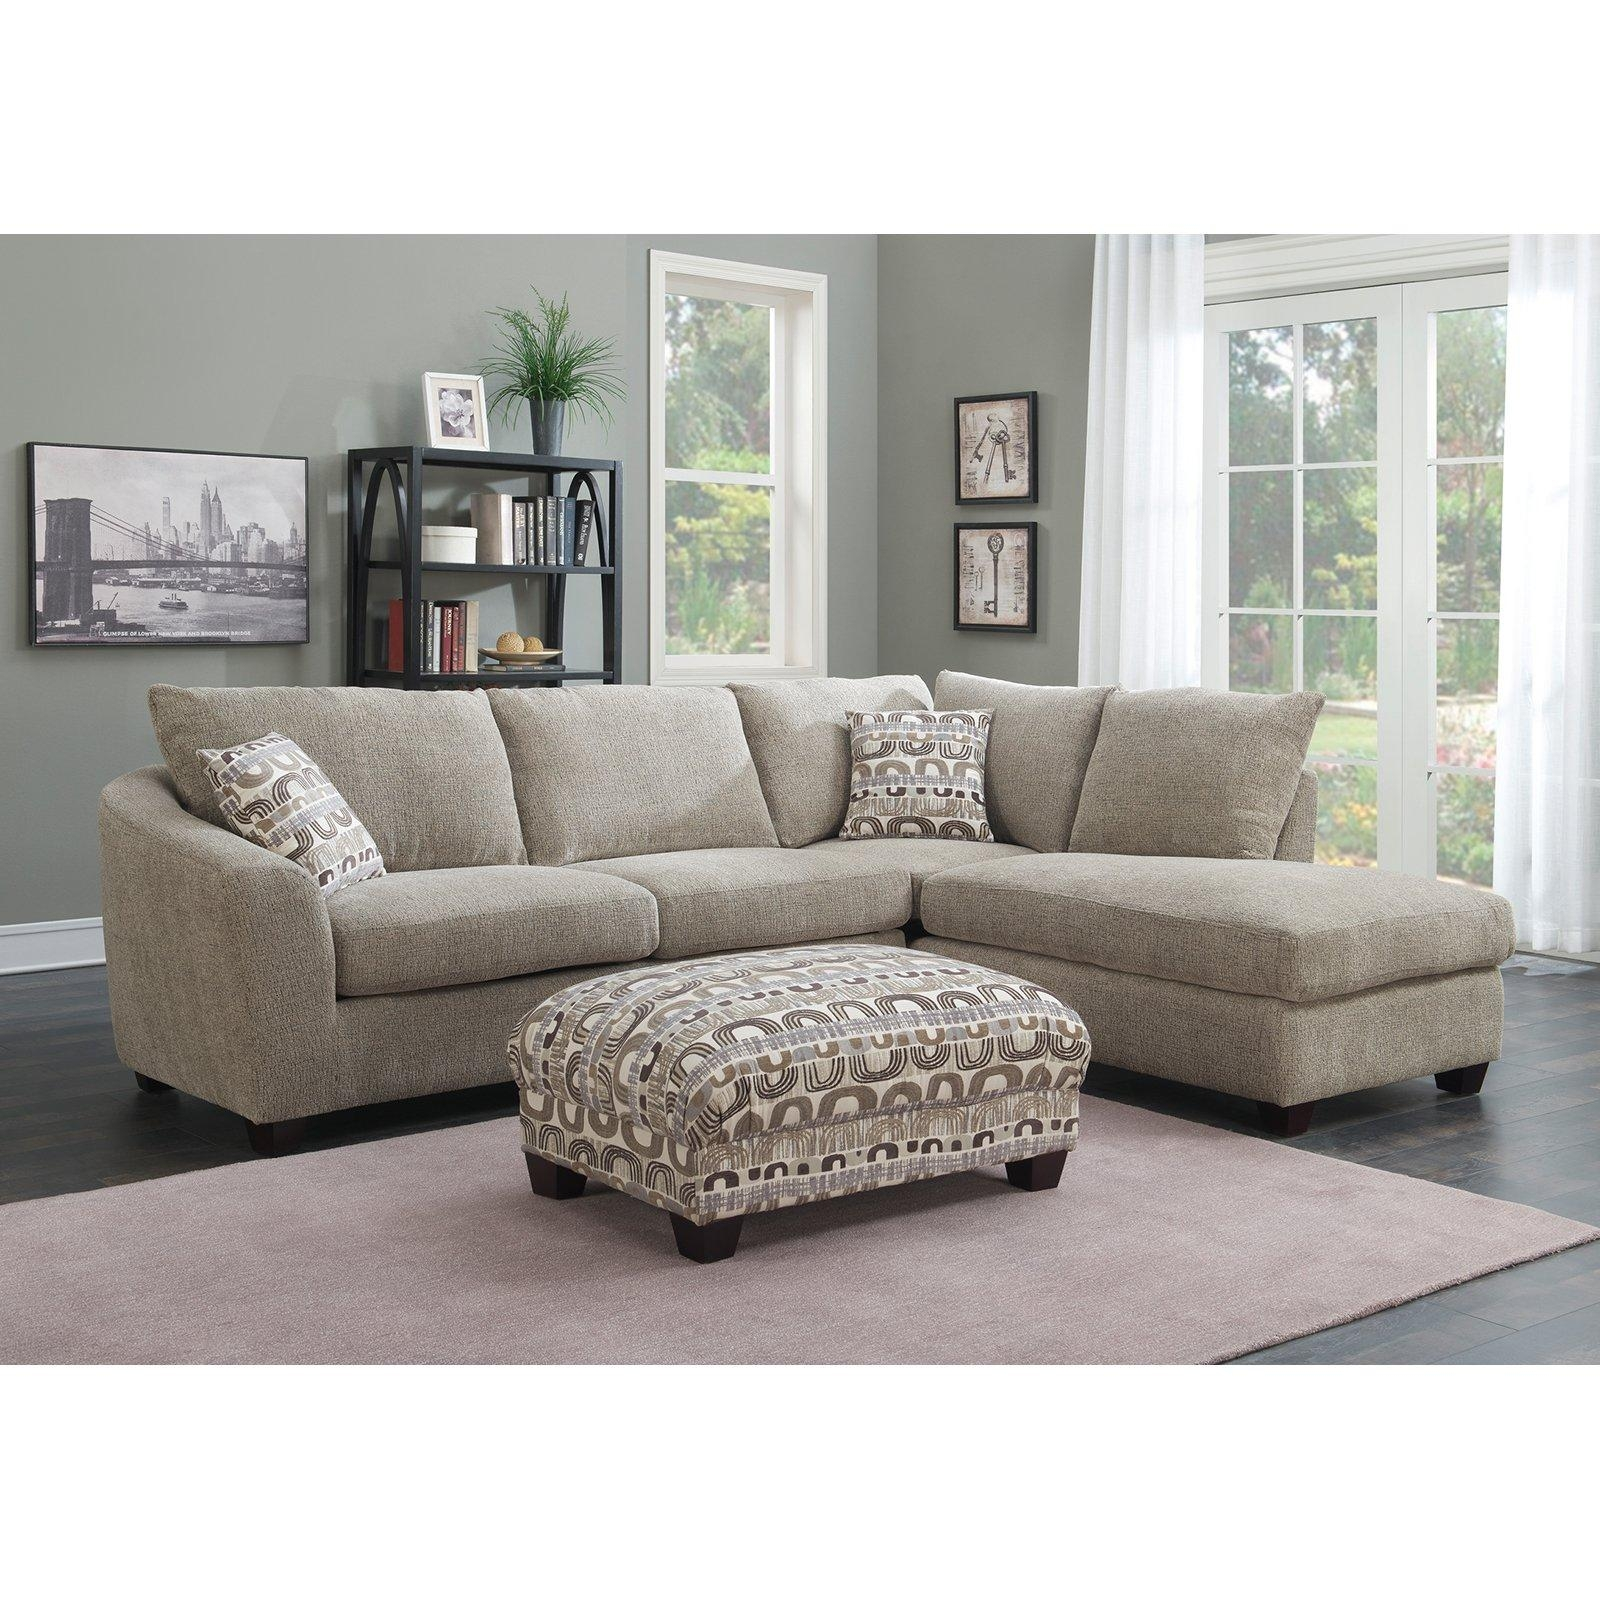 Emerald Home Urbana 2 Piece Sectional Sofa With Chaise – Walmart With Regard To Sectional Sofa With 2 Chaises (View 10 of 20)